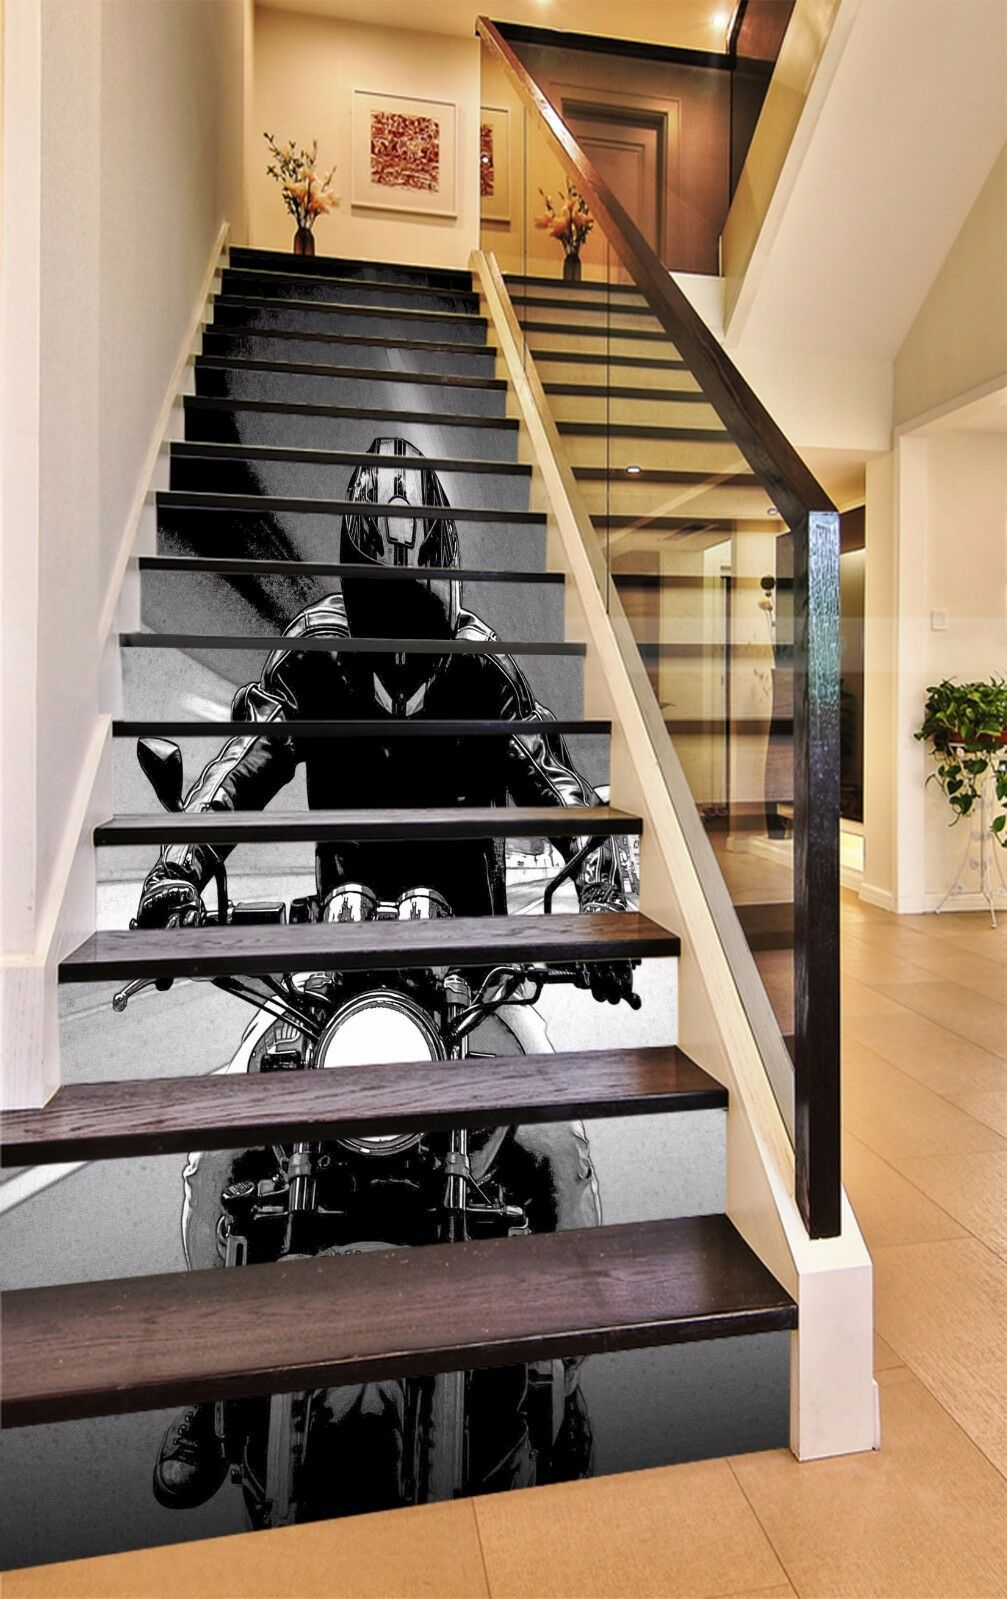 3D Motorcycle 8331 Stair Risers Decoration Photo Mural Vinyl Decal Wallpaper AU